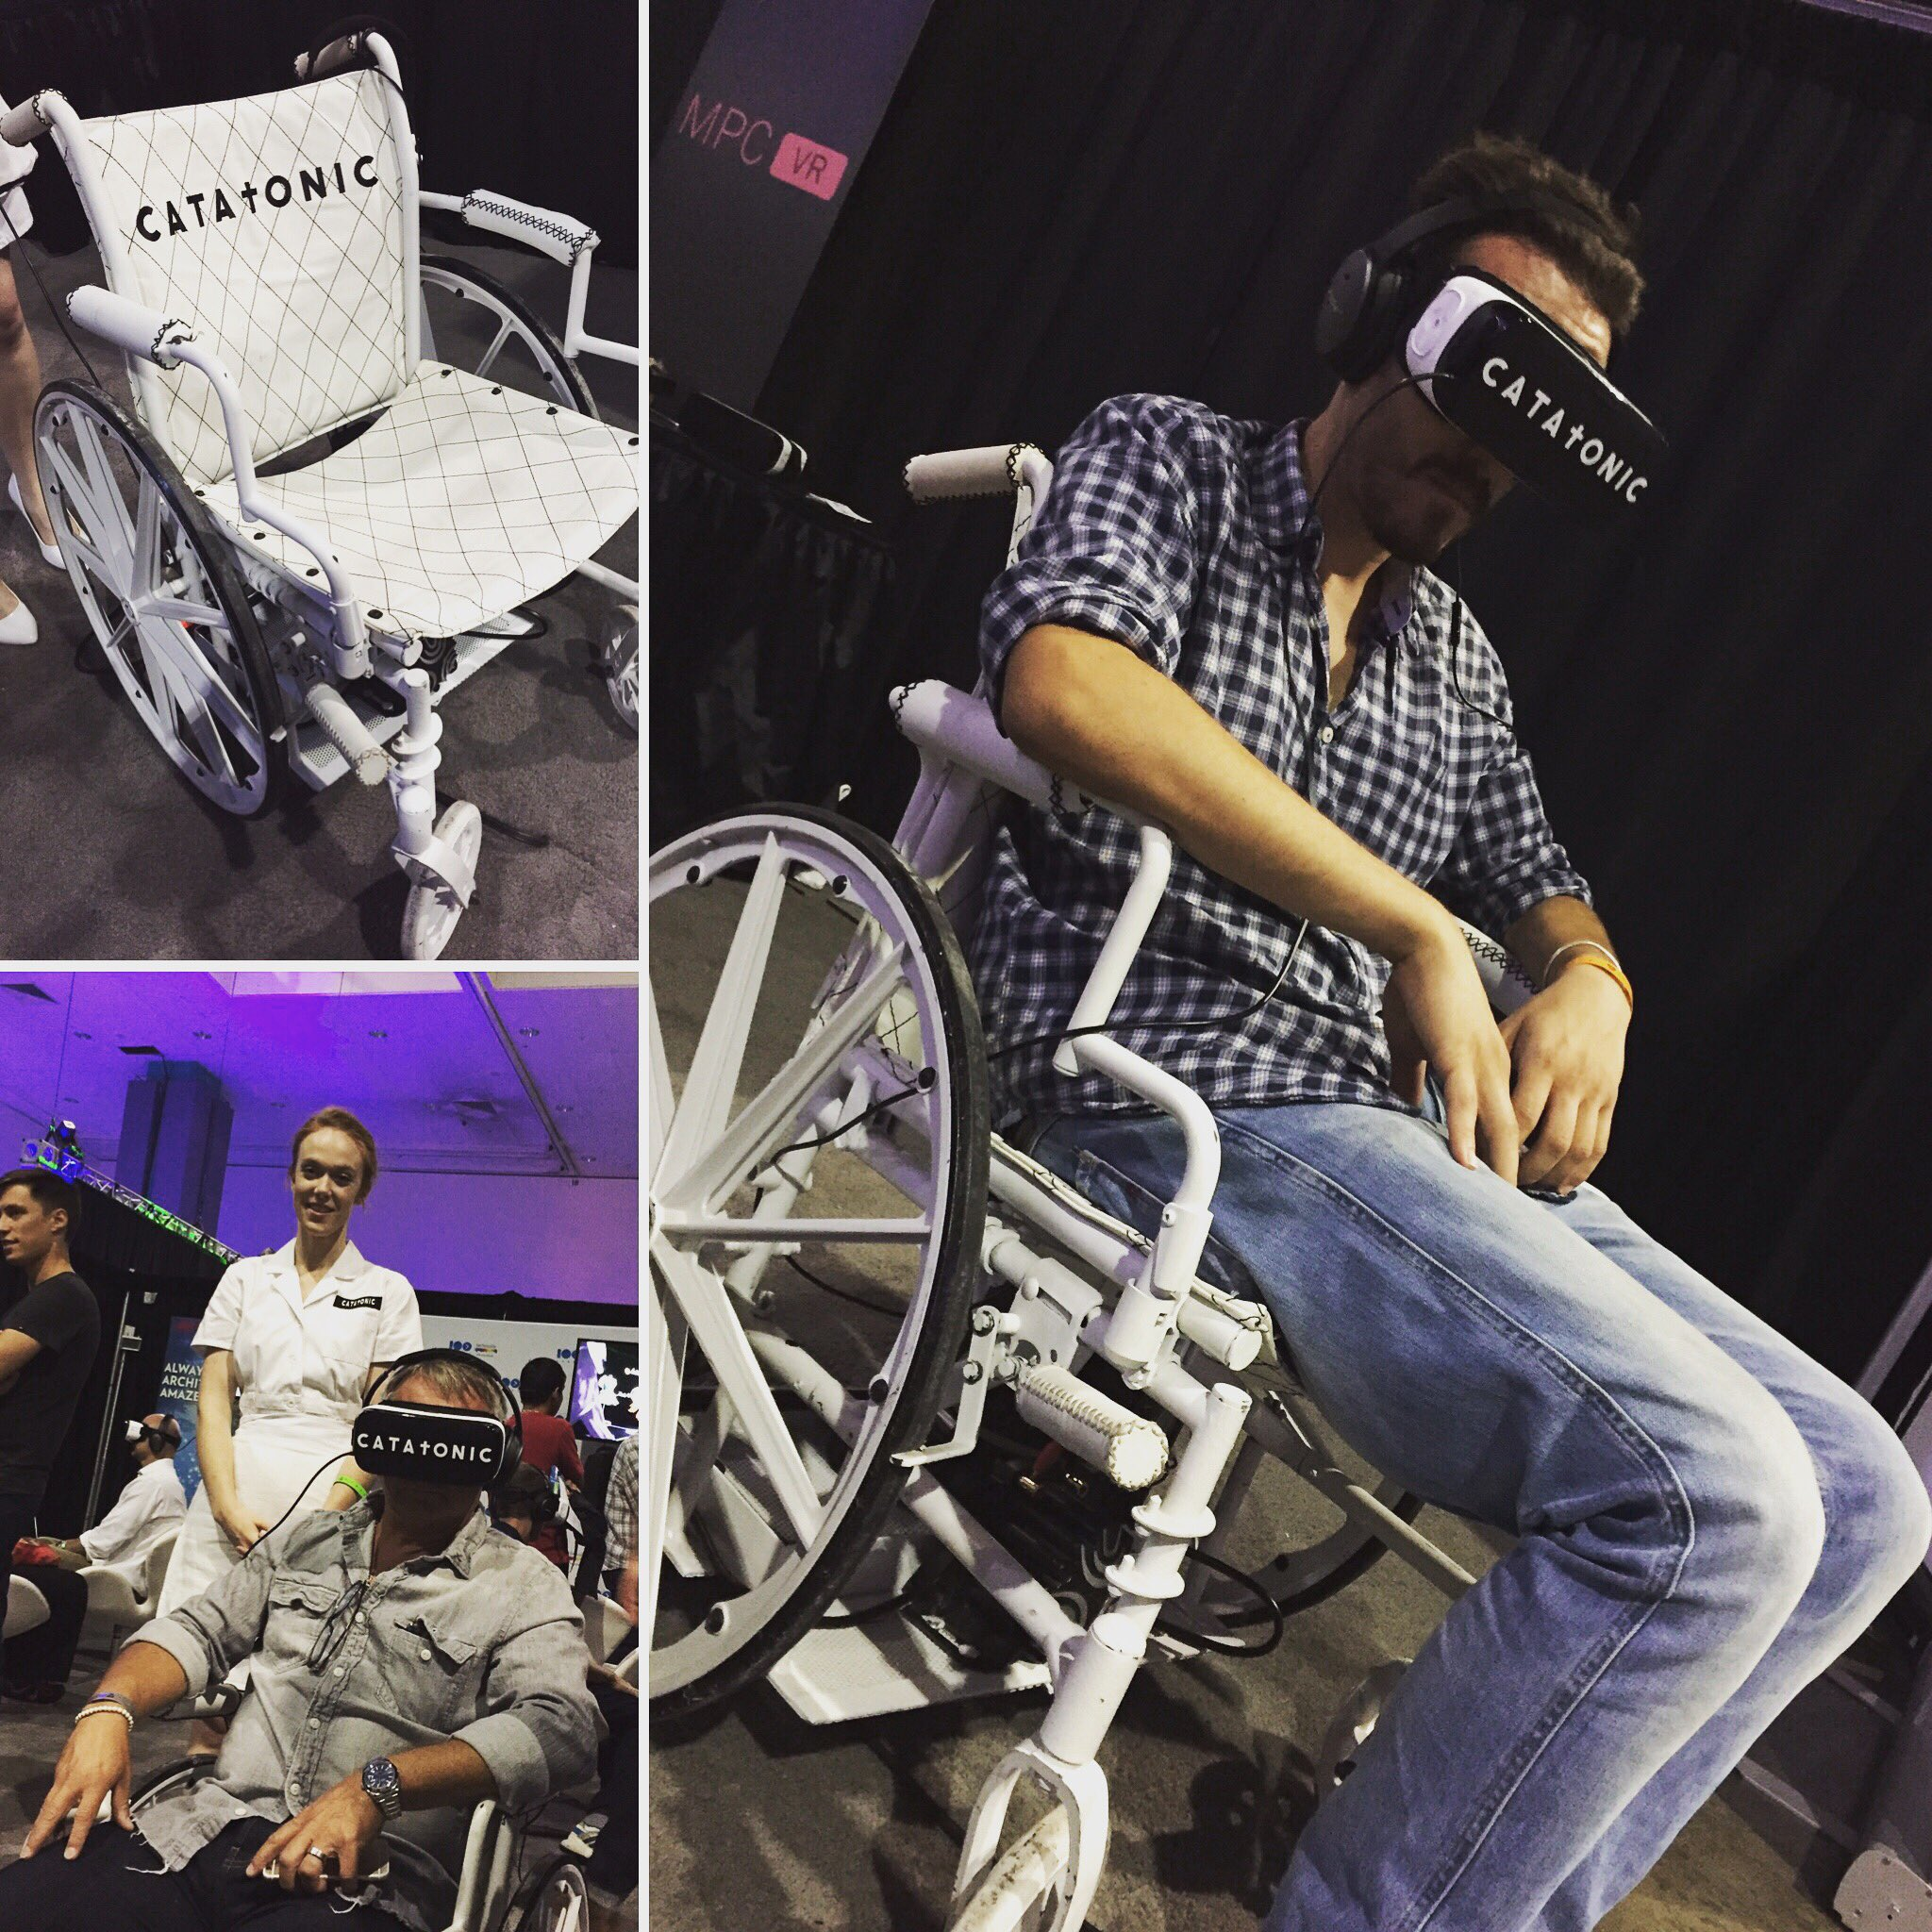 VRLA Summer Expo 2016 (with images, tweets) · TechnicolorCo · Storify